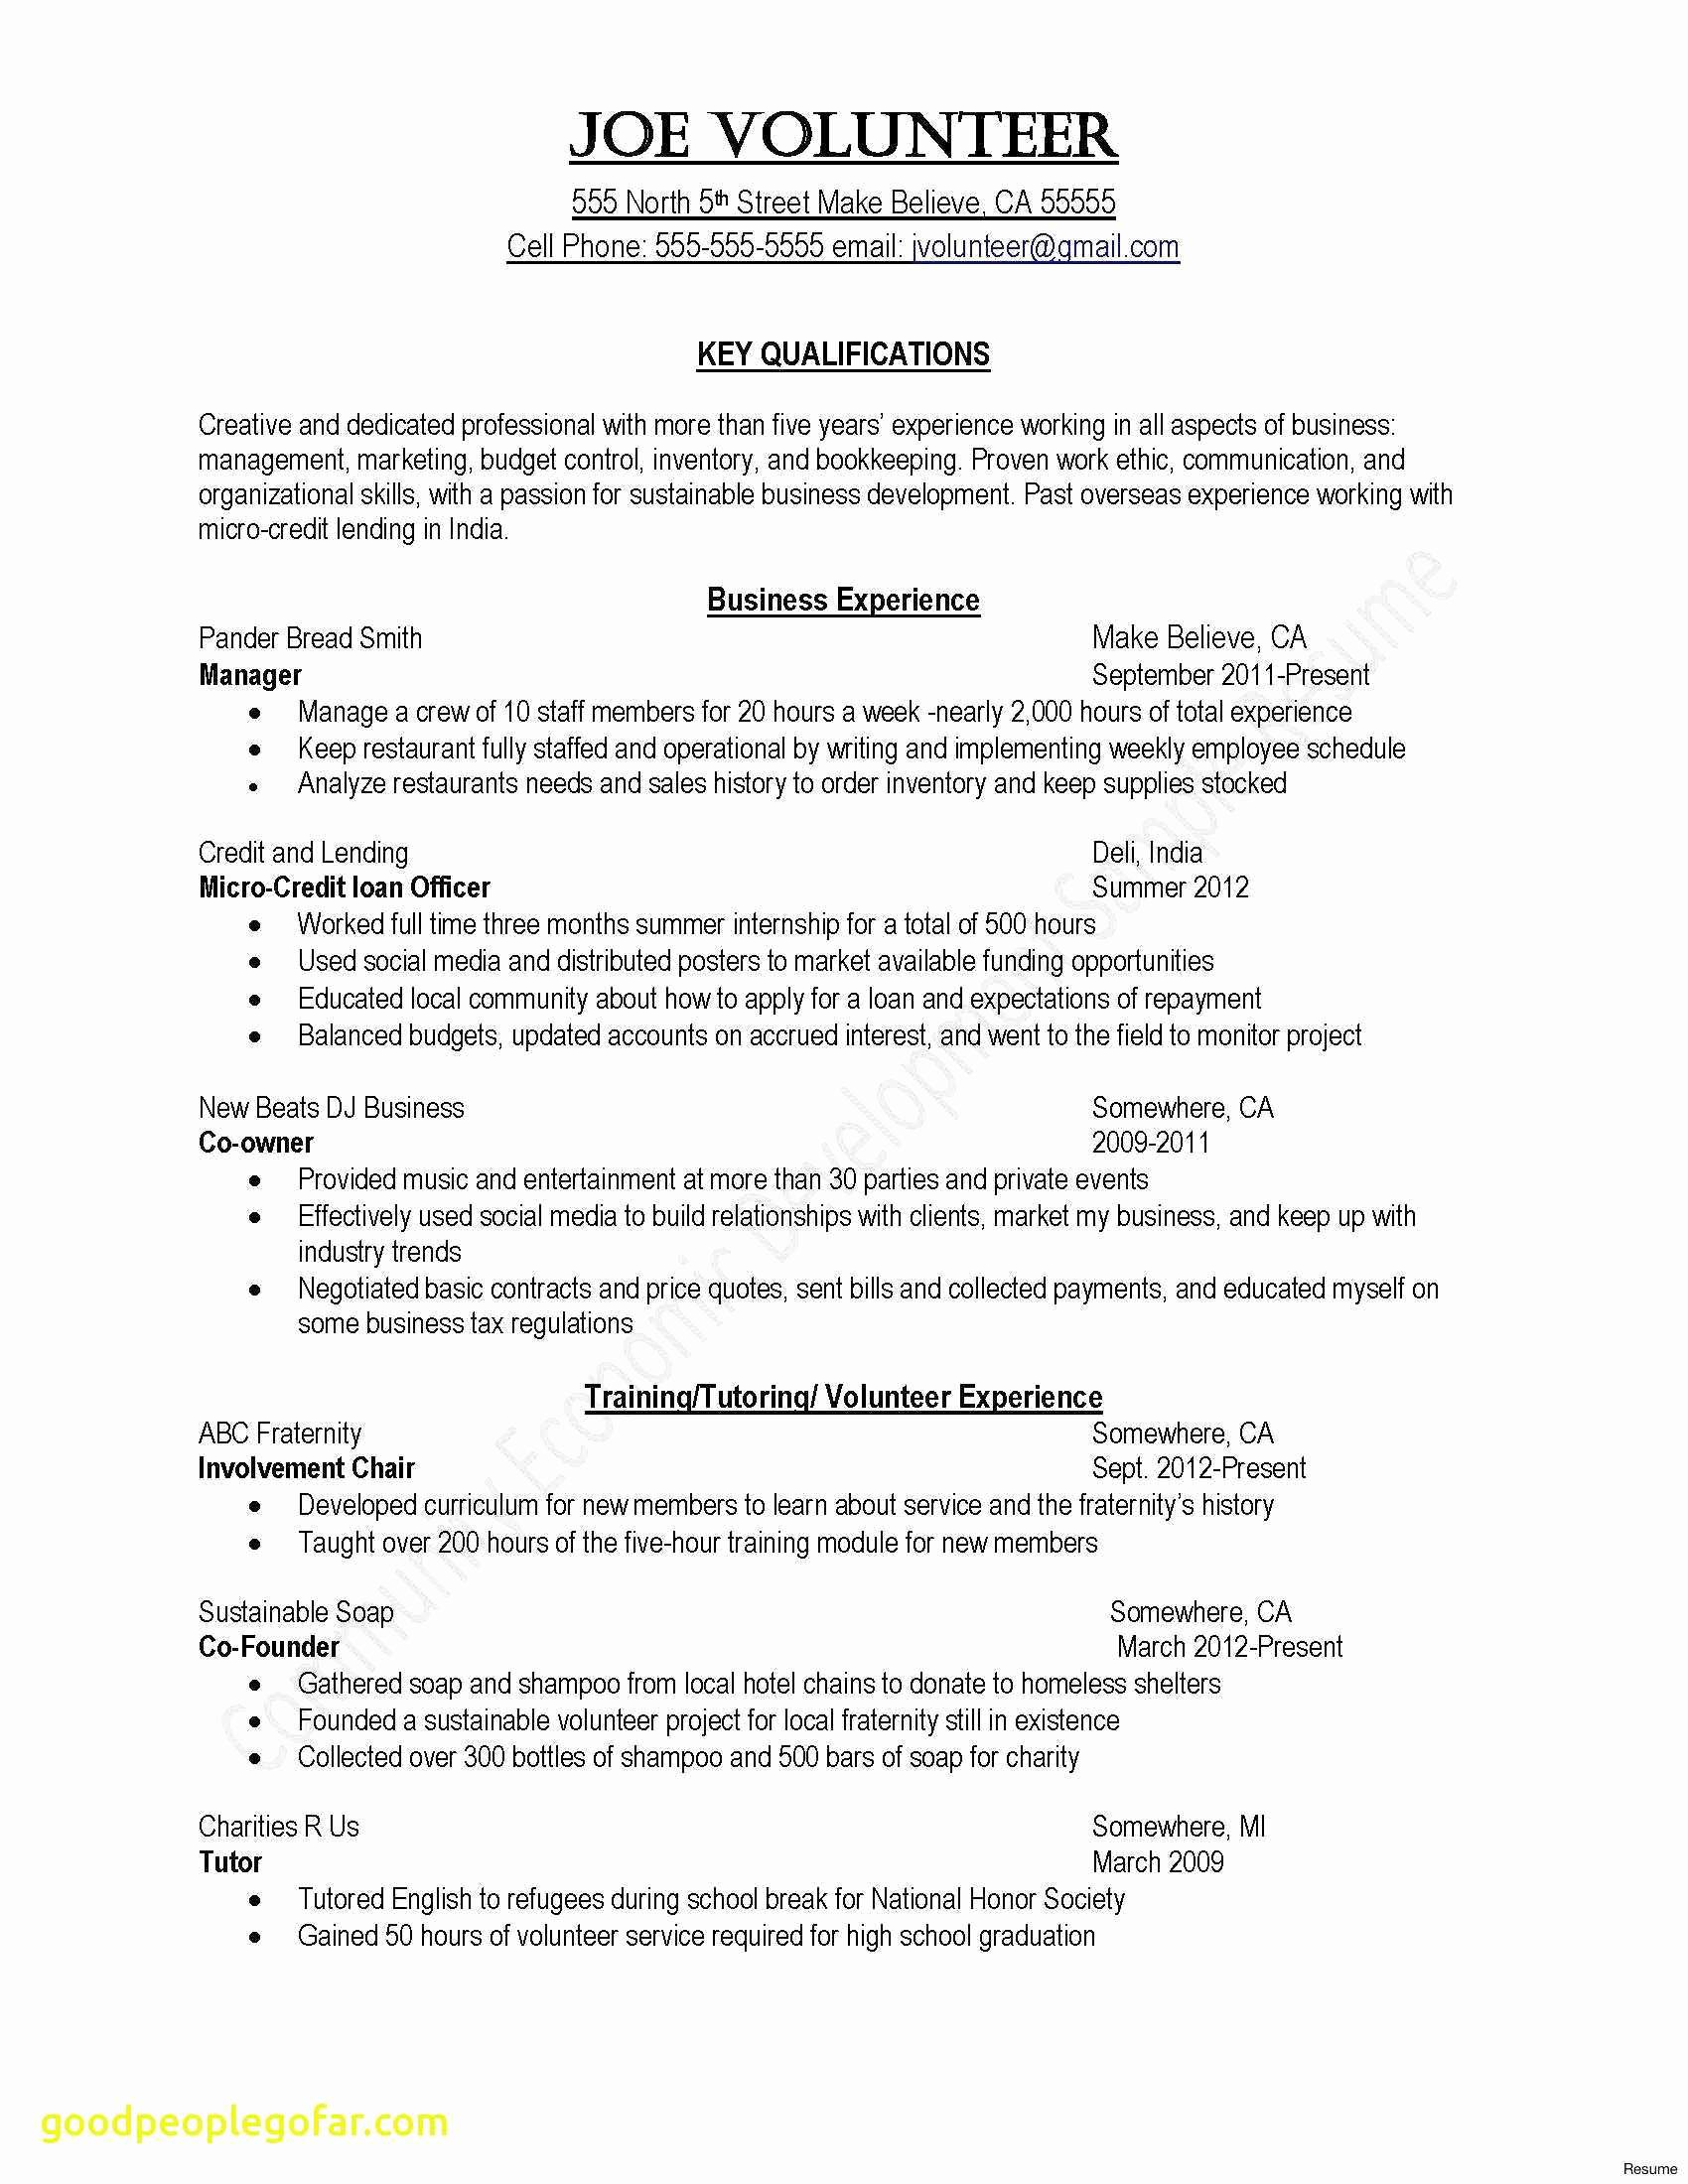 Solicitation Letter Template - Letter asking for Donations Template Awesome Grapher Resume Sample